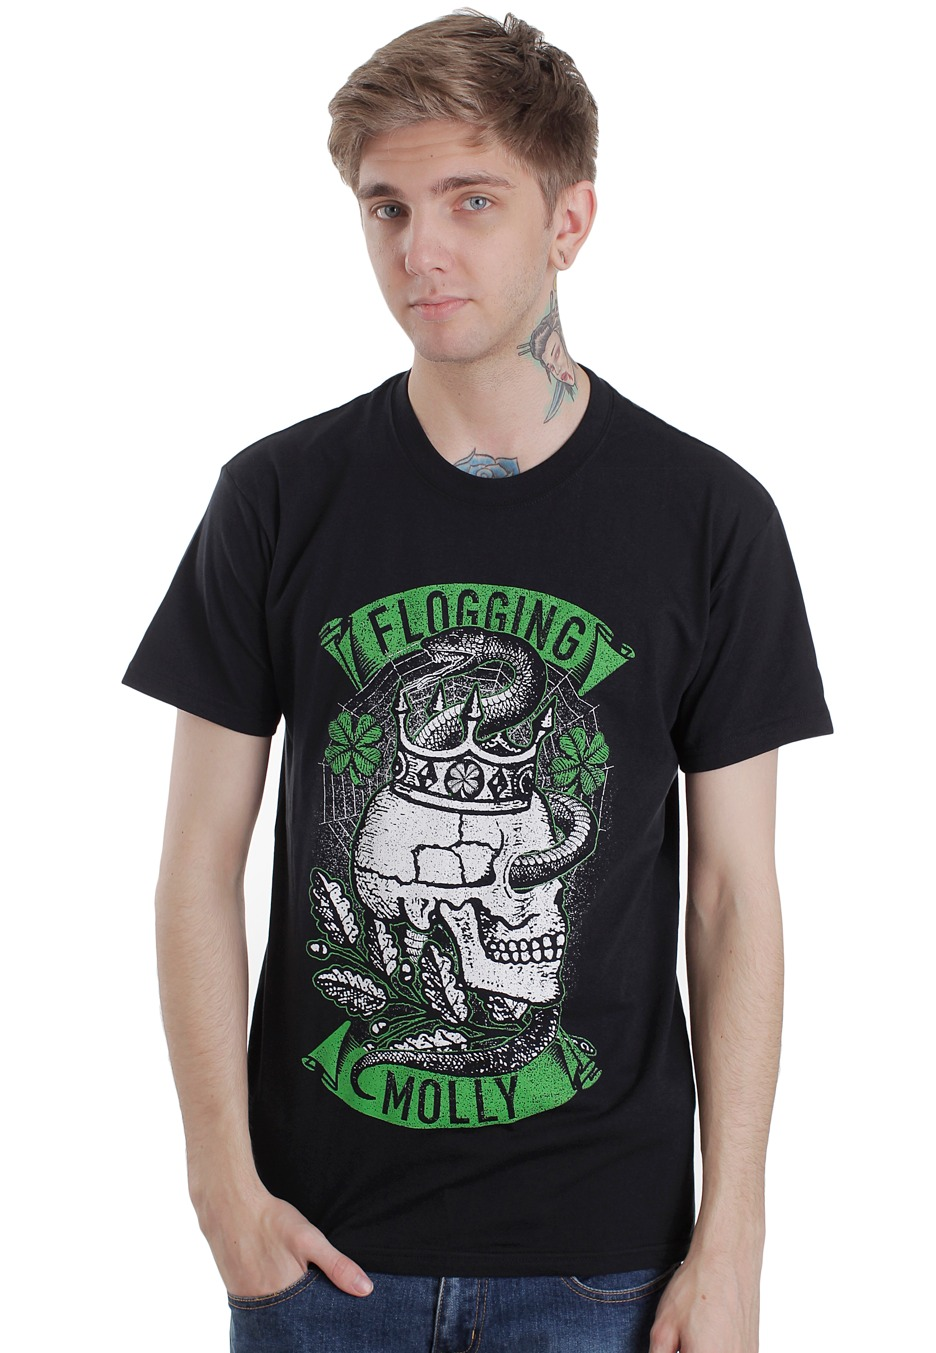 Flogging molly clothing